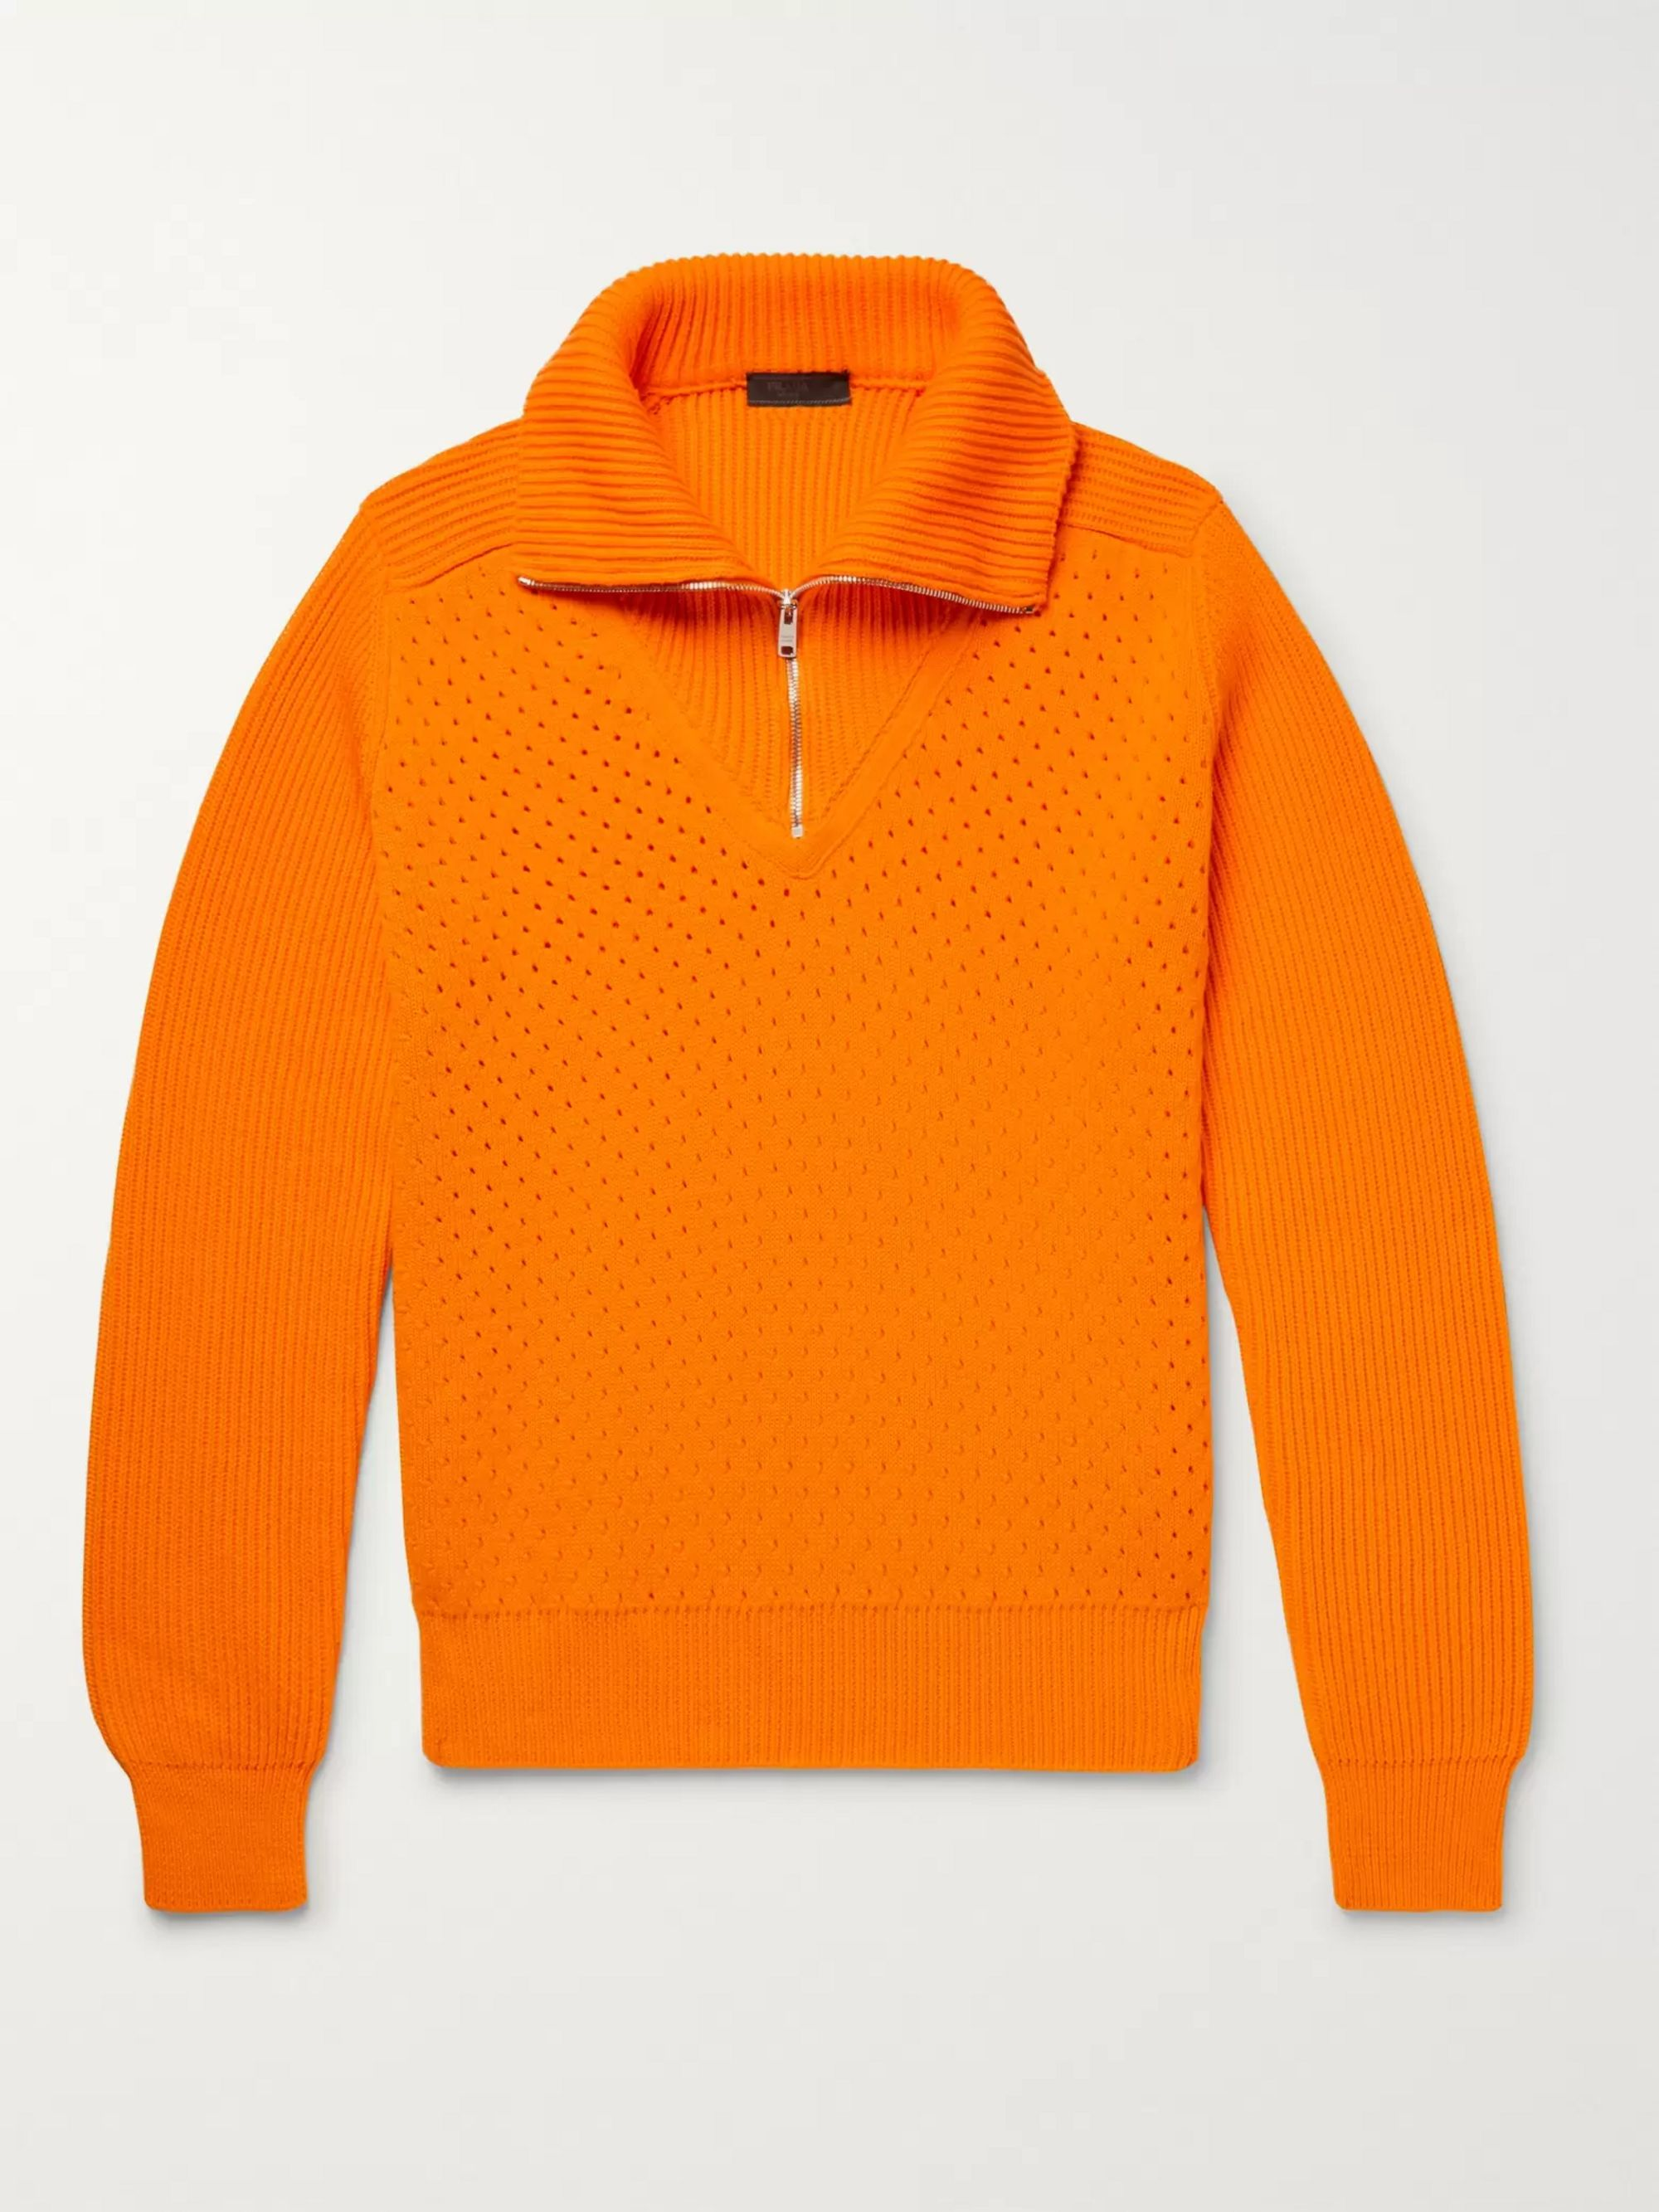 Prada Perforated and Ribbed Cotton Half-Zip Sweater